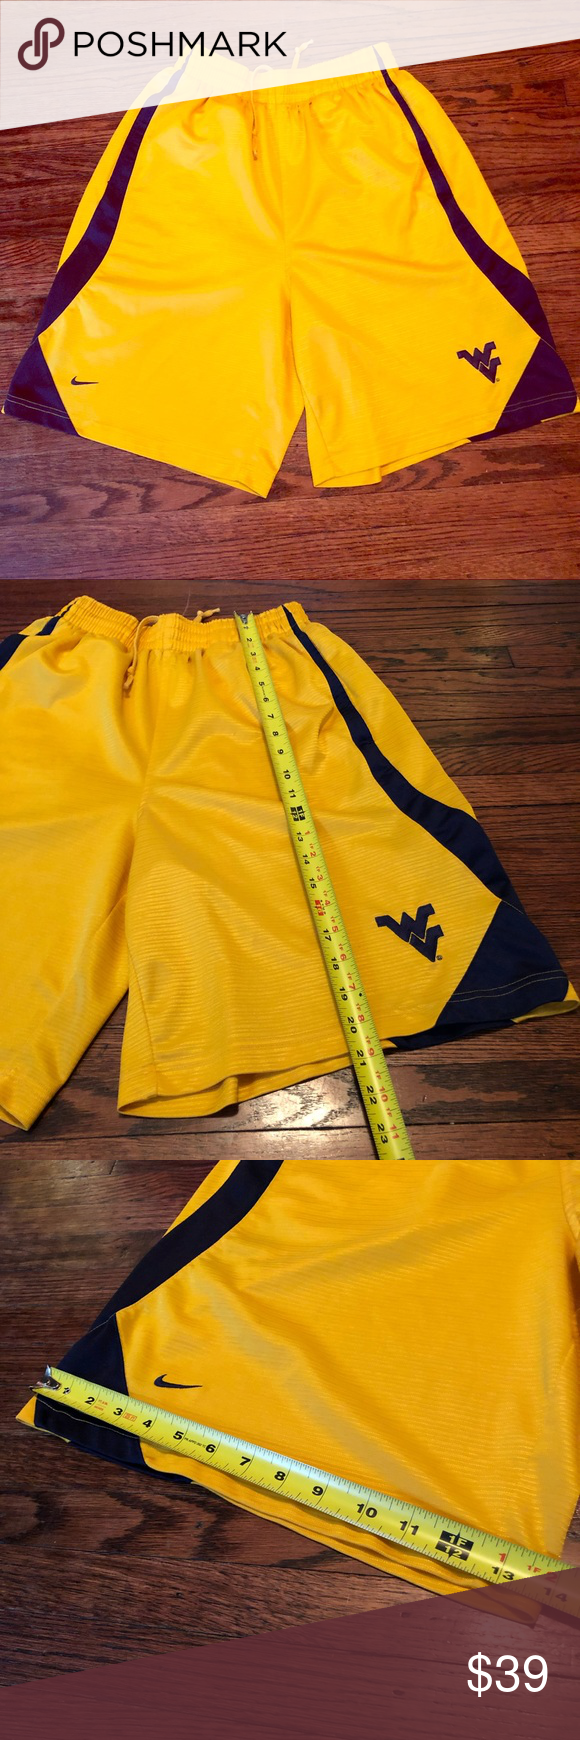 rare NIKE TEAM WVU Mountaineers BASKETBALL SHORTS rare NIKE TEAM West Virginia Mountaineers BASKETBALL SHORTS  Color: Old Gold  Size: Men's Small - See photos for measurements  Basketball Shorts. Loose/Baggy Fit. Elastic & drawstring. Embroidered Logos.  Great used condition. Very minor wear shown.  100% Polyester. Nike Shorts Athletic #wvumountaineers rare NIKE TEAM WVU Mountaineers BASKETBALL SHORTS rare NIKE TEAM West Virginia Mountaineers BASKETBALL SHORTS  Color: Old Gold  Size: Men's Sma #wvumountaineers